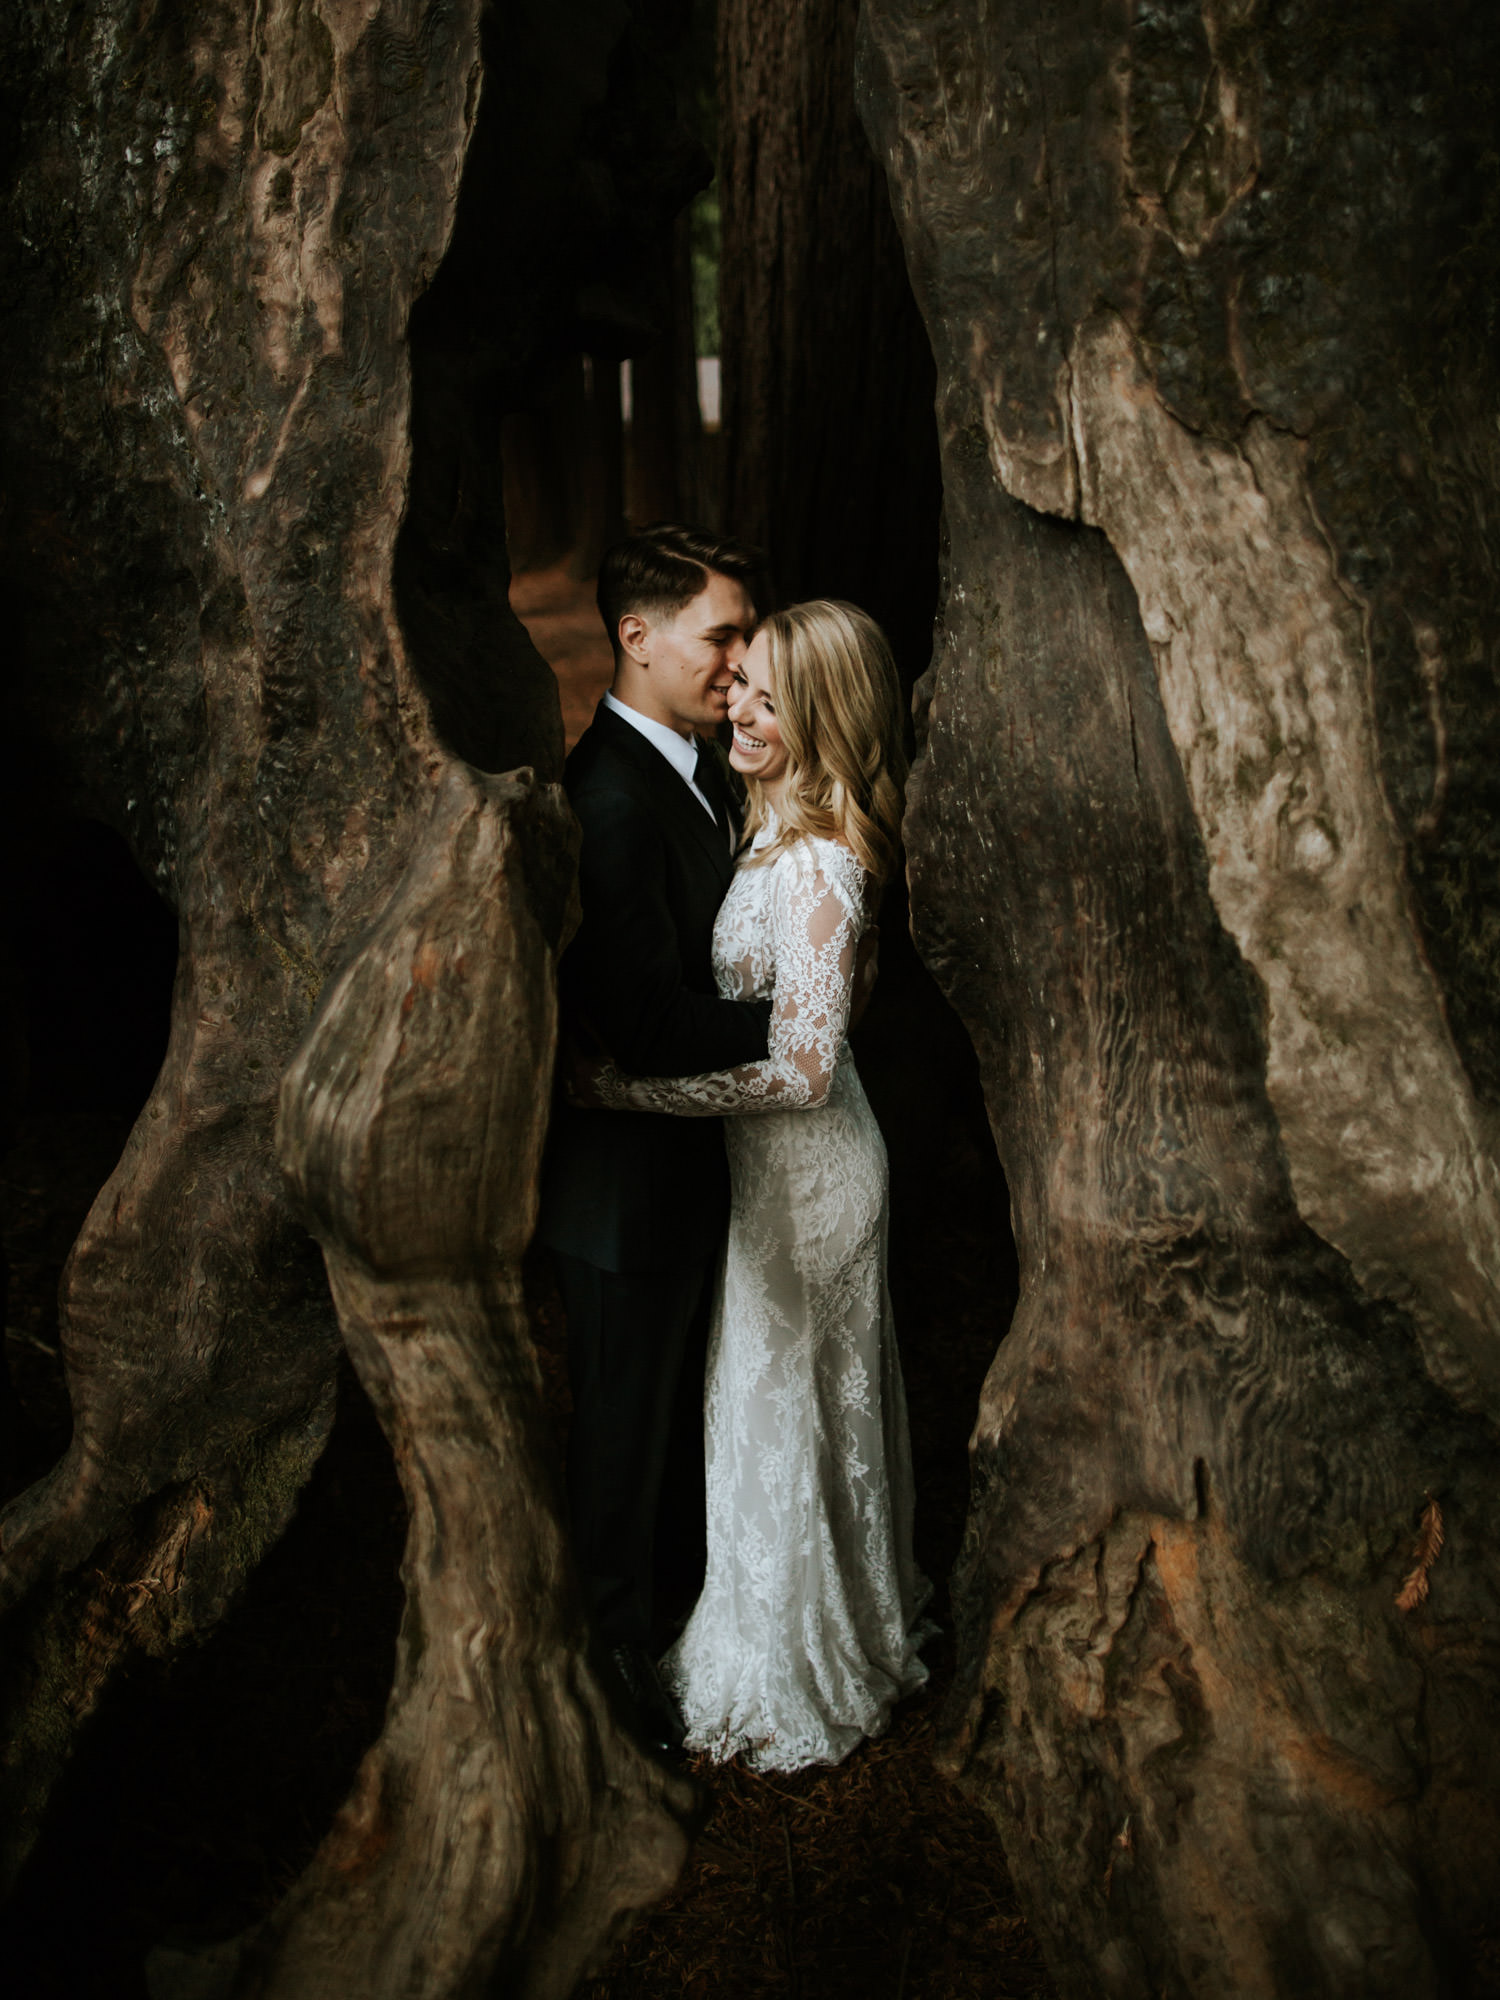 Portrait of the bride and groom take inside giant Redwood stump at Camp Campbell in California